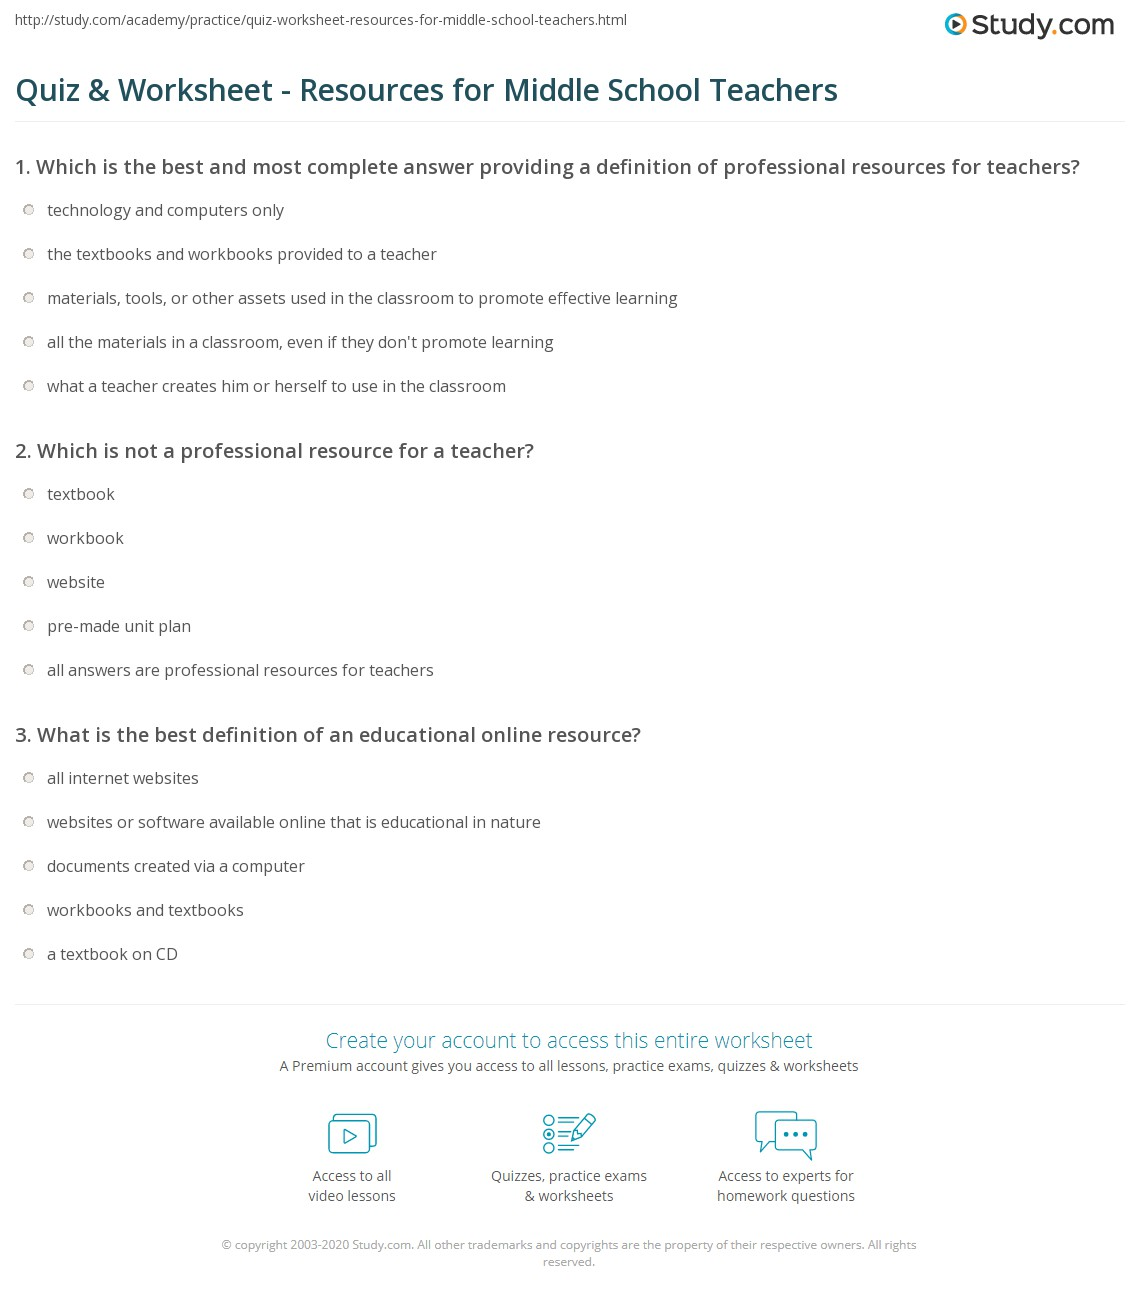 Quiz & Worksheet - Resources for Middle School Teachers | Study.com